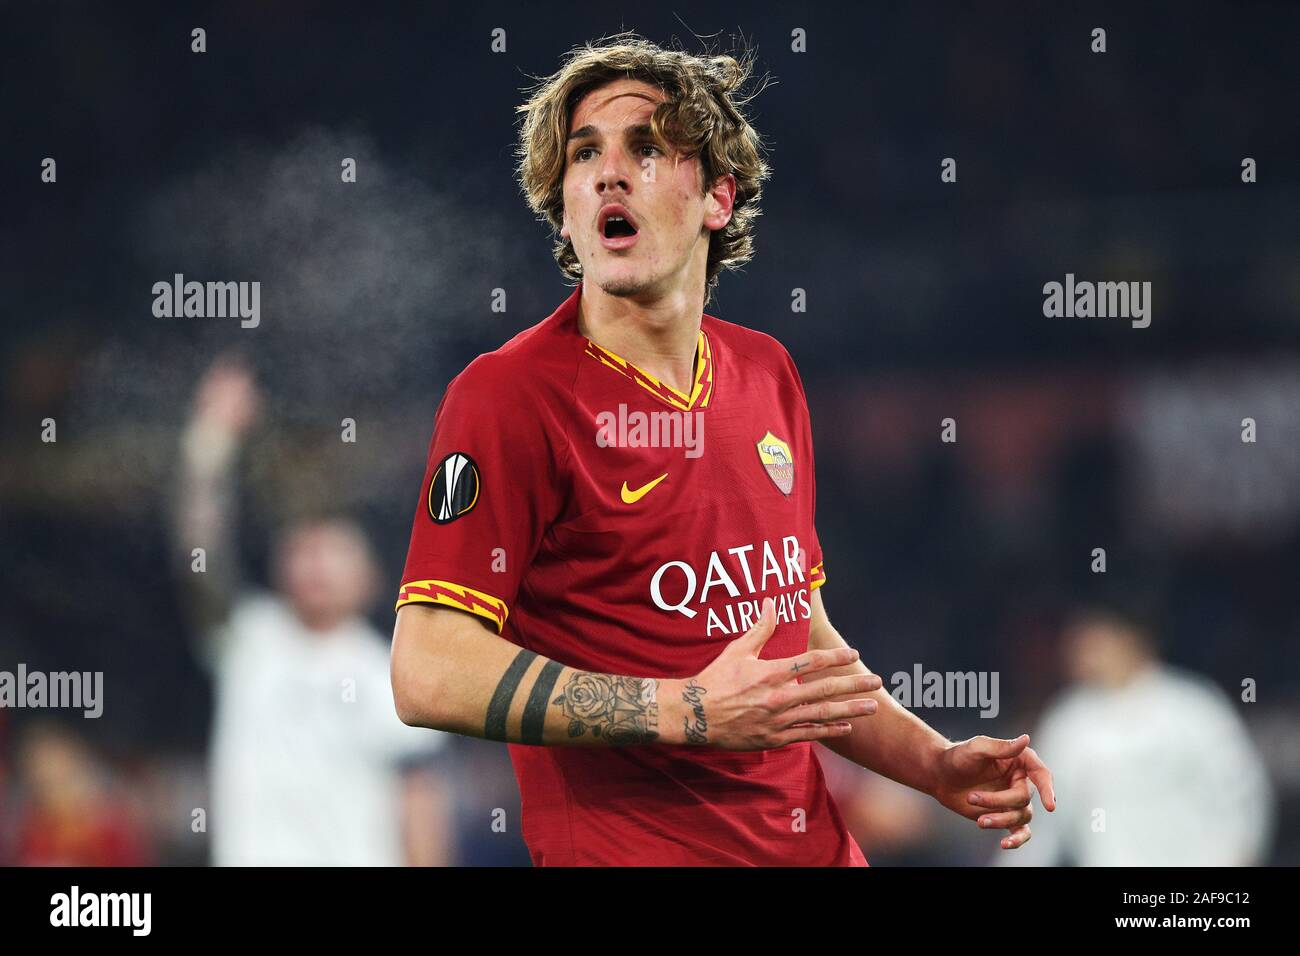 Nicolo' Zaniolo of Roma reacts during the UEFA Europa League, Group J football match between AS Roma and Wolfsberg AC on December 12, 2019 at Stadio Olimpico in Rome, Italy - Photo Federico Proietti/ESPA-Images Stock Photo